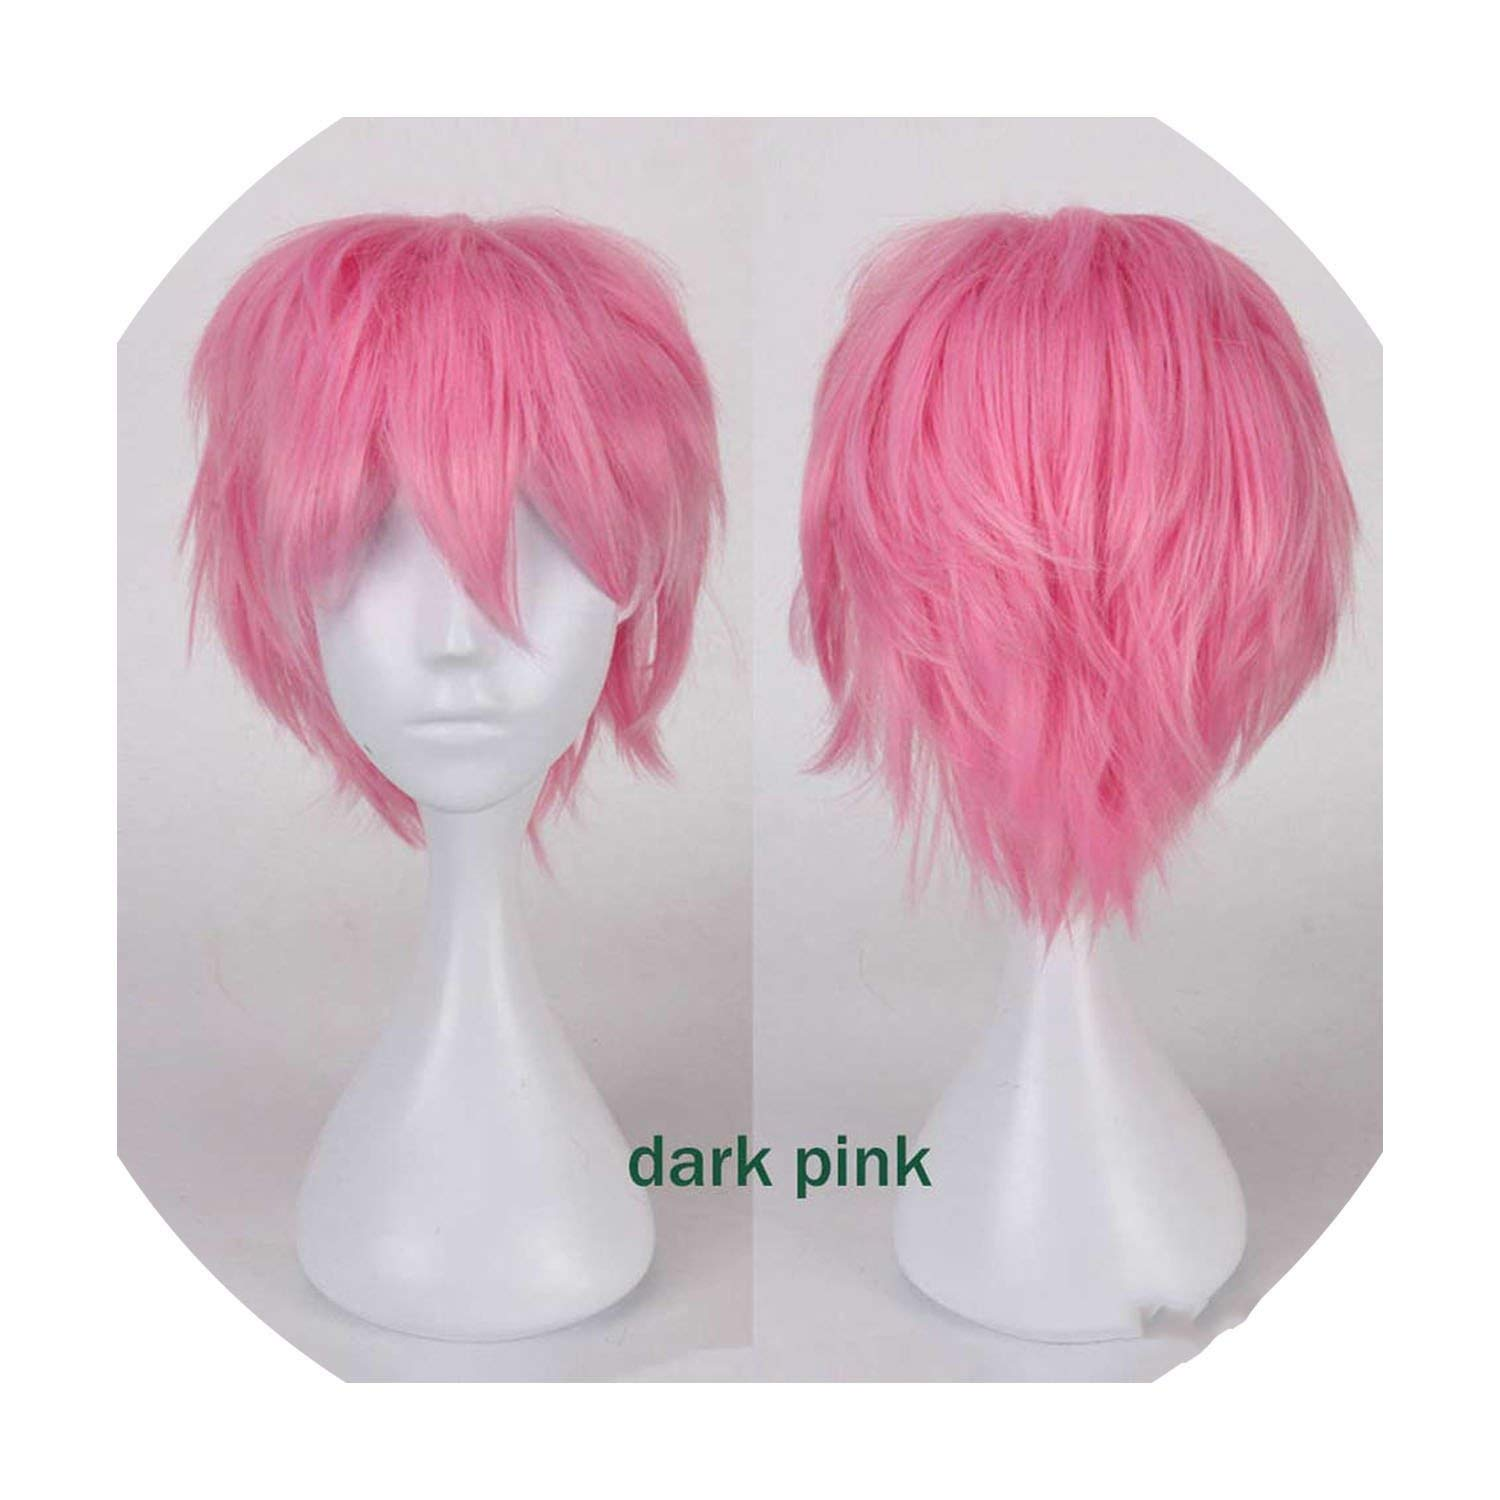 Amazon Com Wigs 12 Short Cosplay Wig Synthetic Hair Wigs Fake Hair For Costume Wig I Guess 12inch Beauty